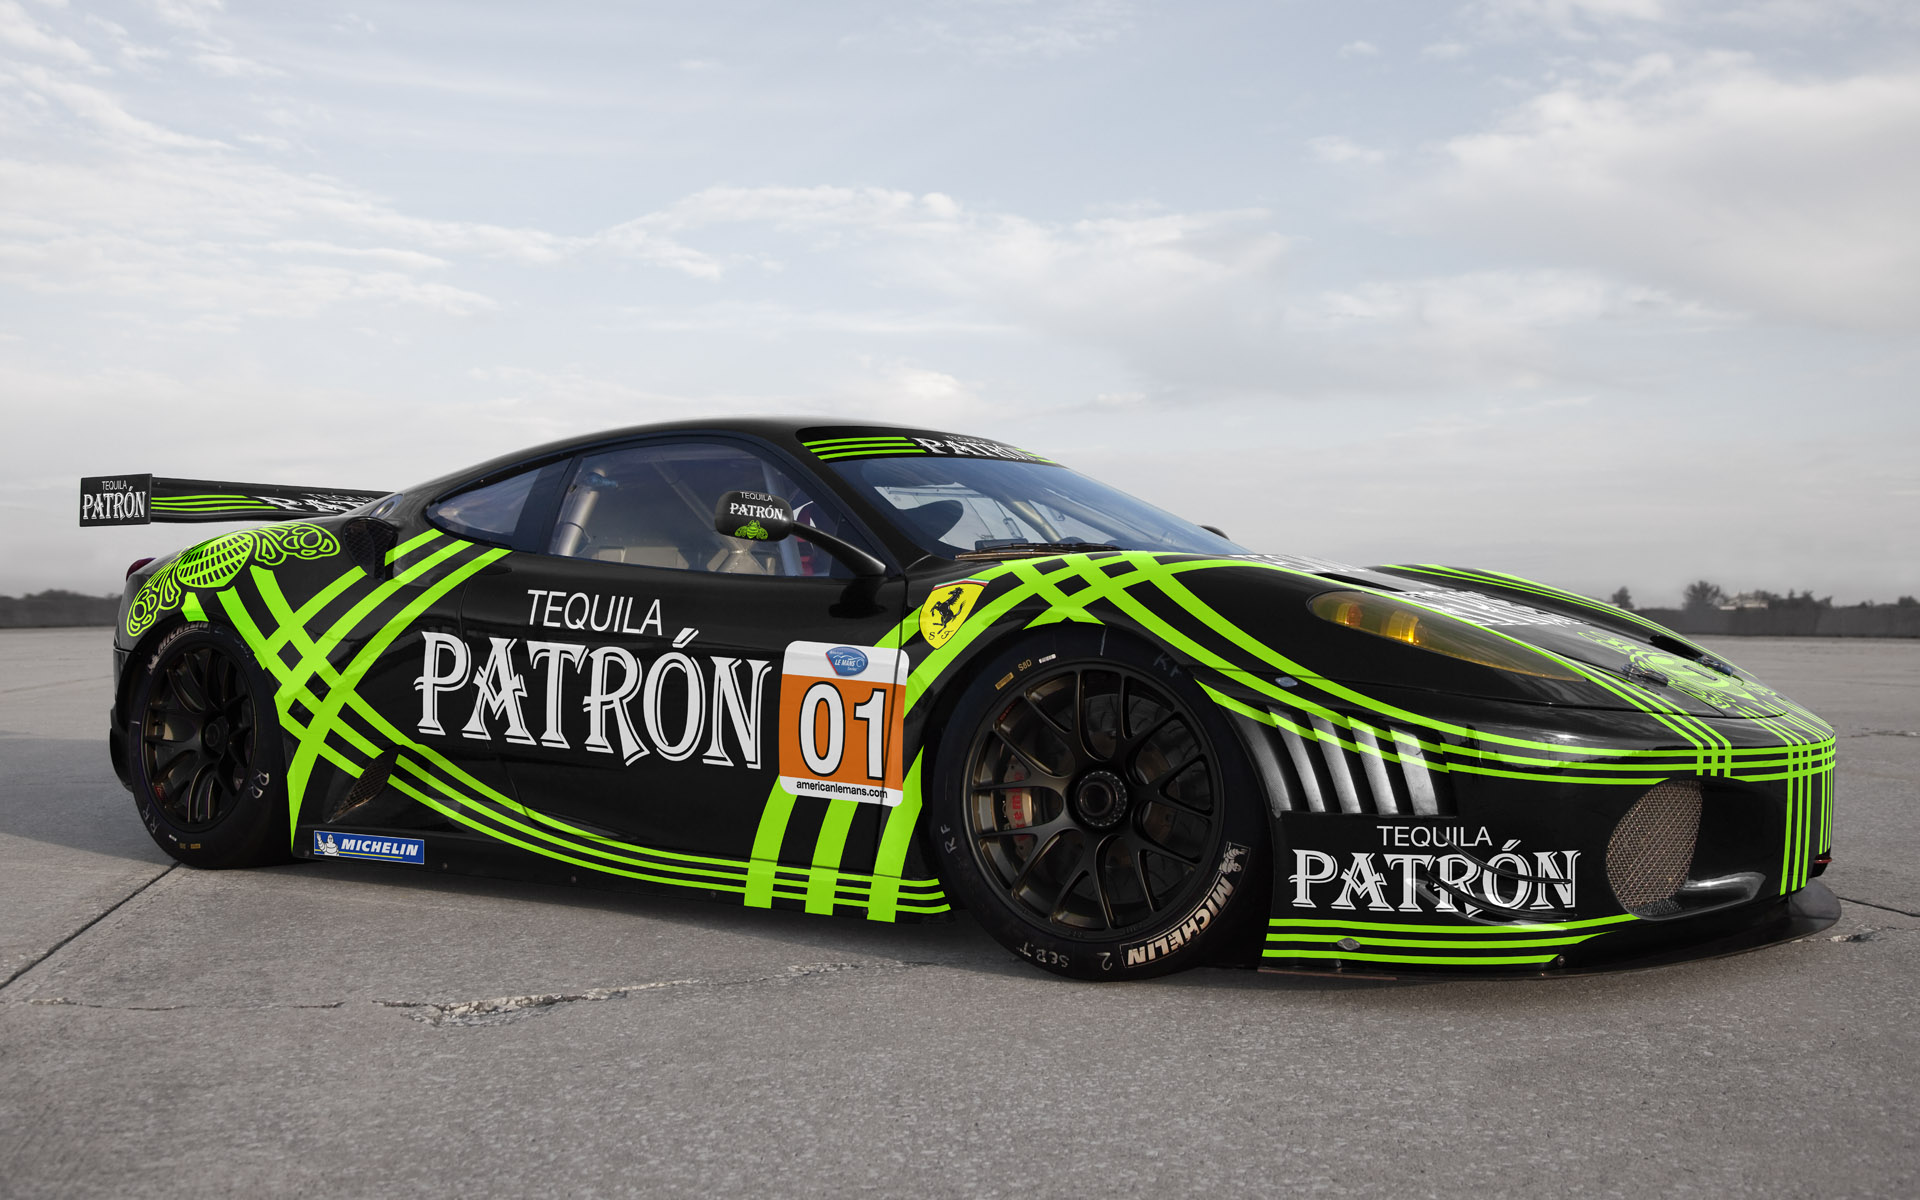 2010 Extreme Speed Motorsports Pu00e1tron Ferrari 430 GT Livery